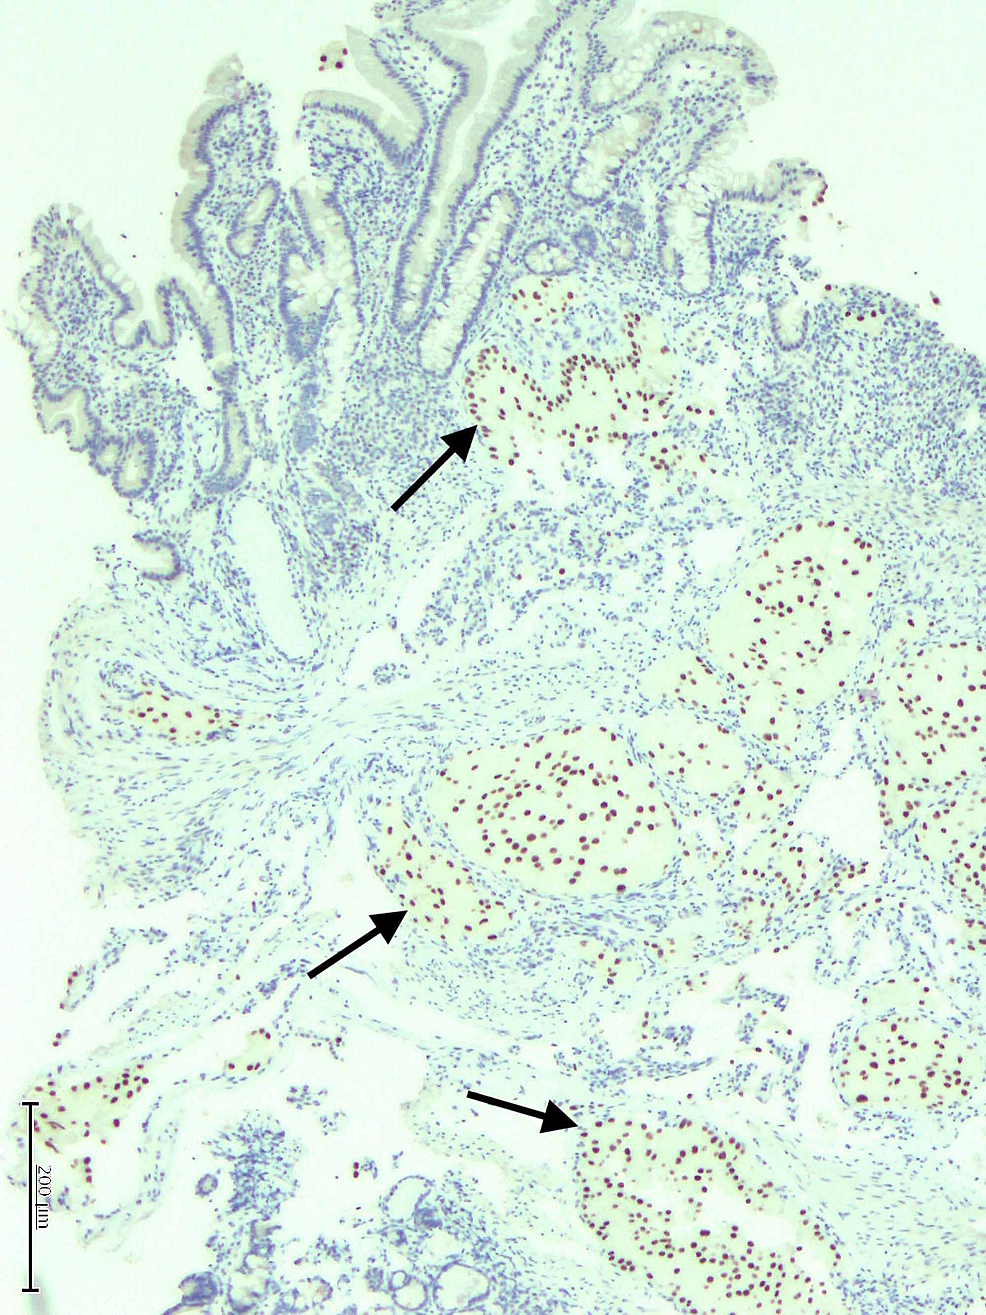 Metastatic-RCC-demonstrating-strong-nuclear-PAX-8-reactivity-by-immunohistochemistry-as-indicated-by-arrows.-